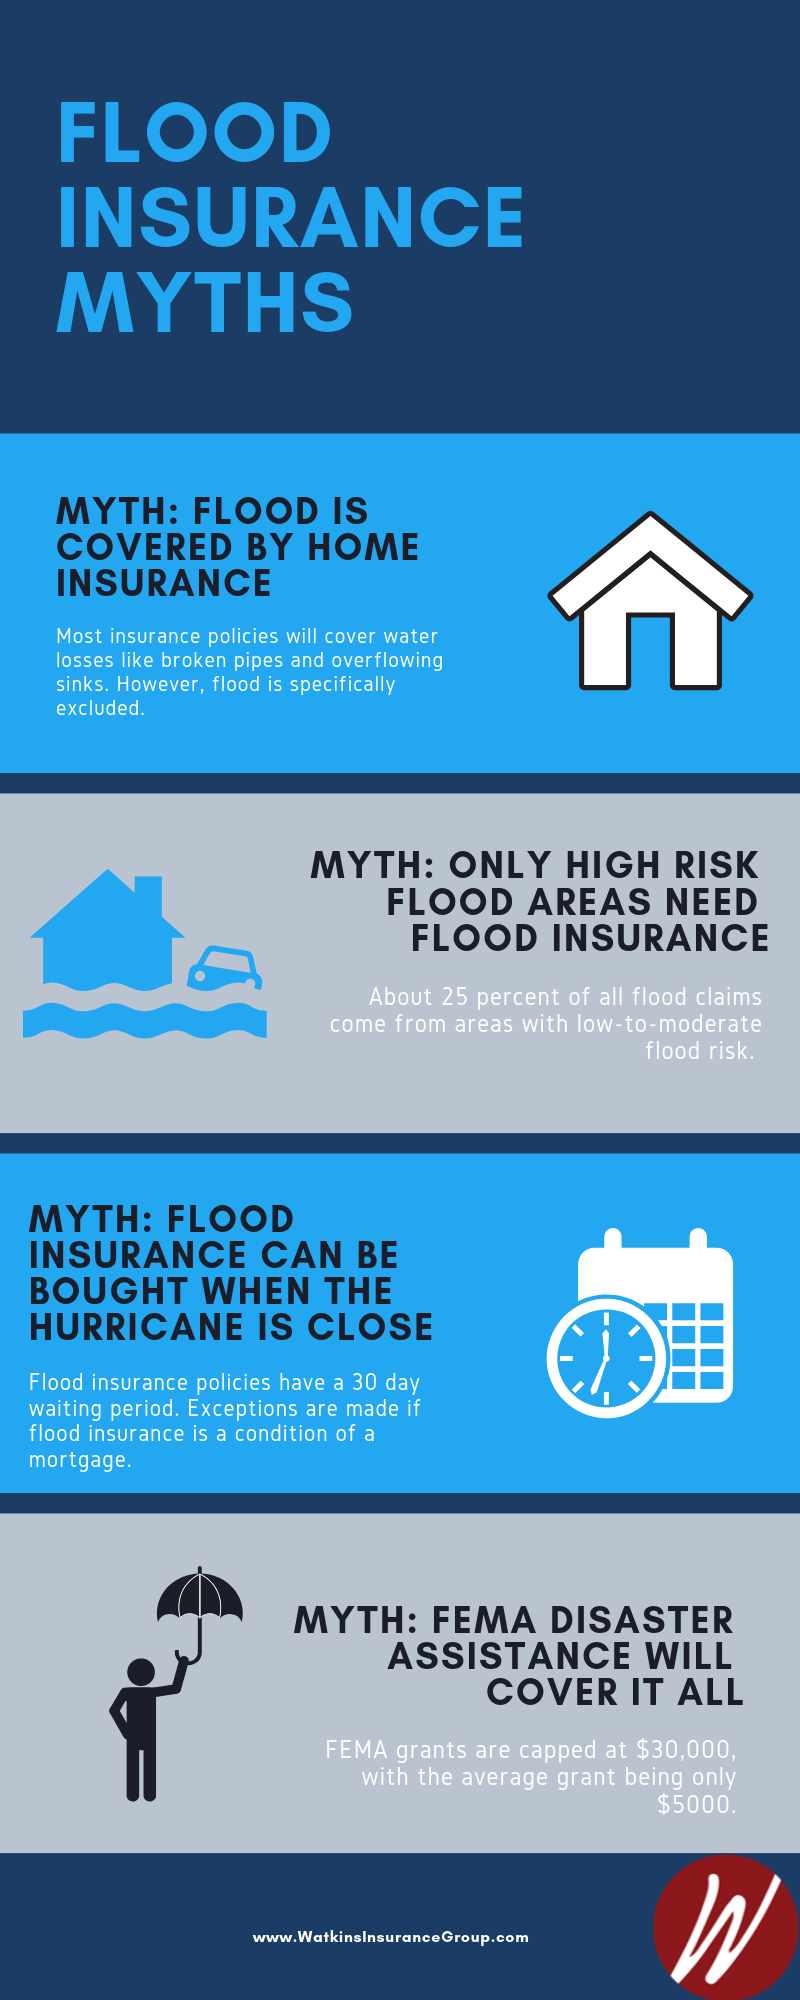 Flood Insurance Myths Flood Insurance Personal Insurance Group